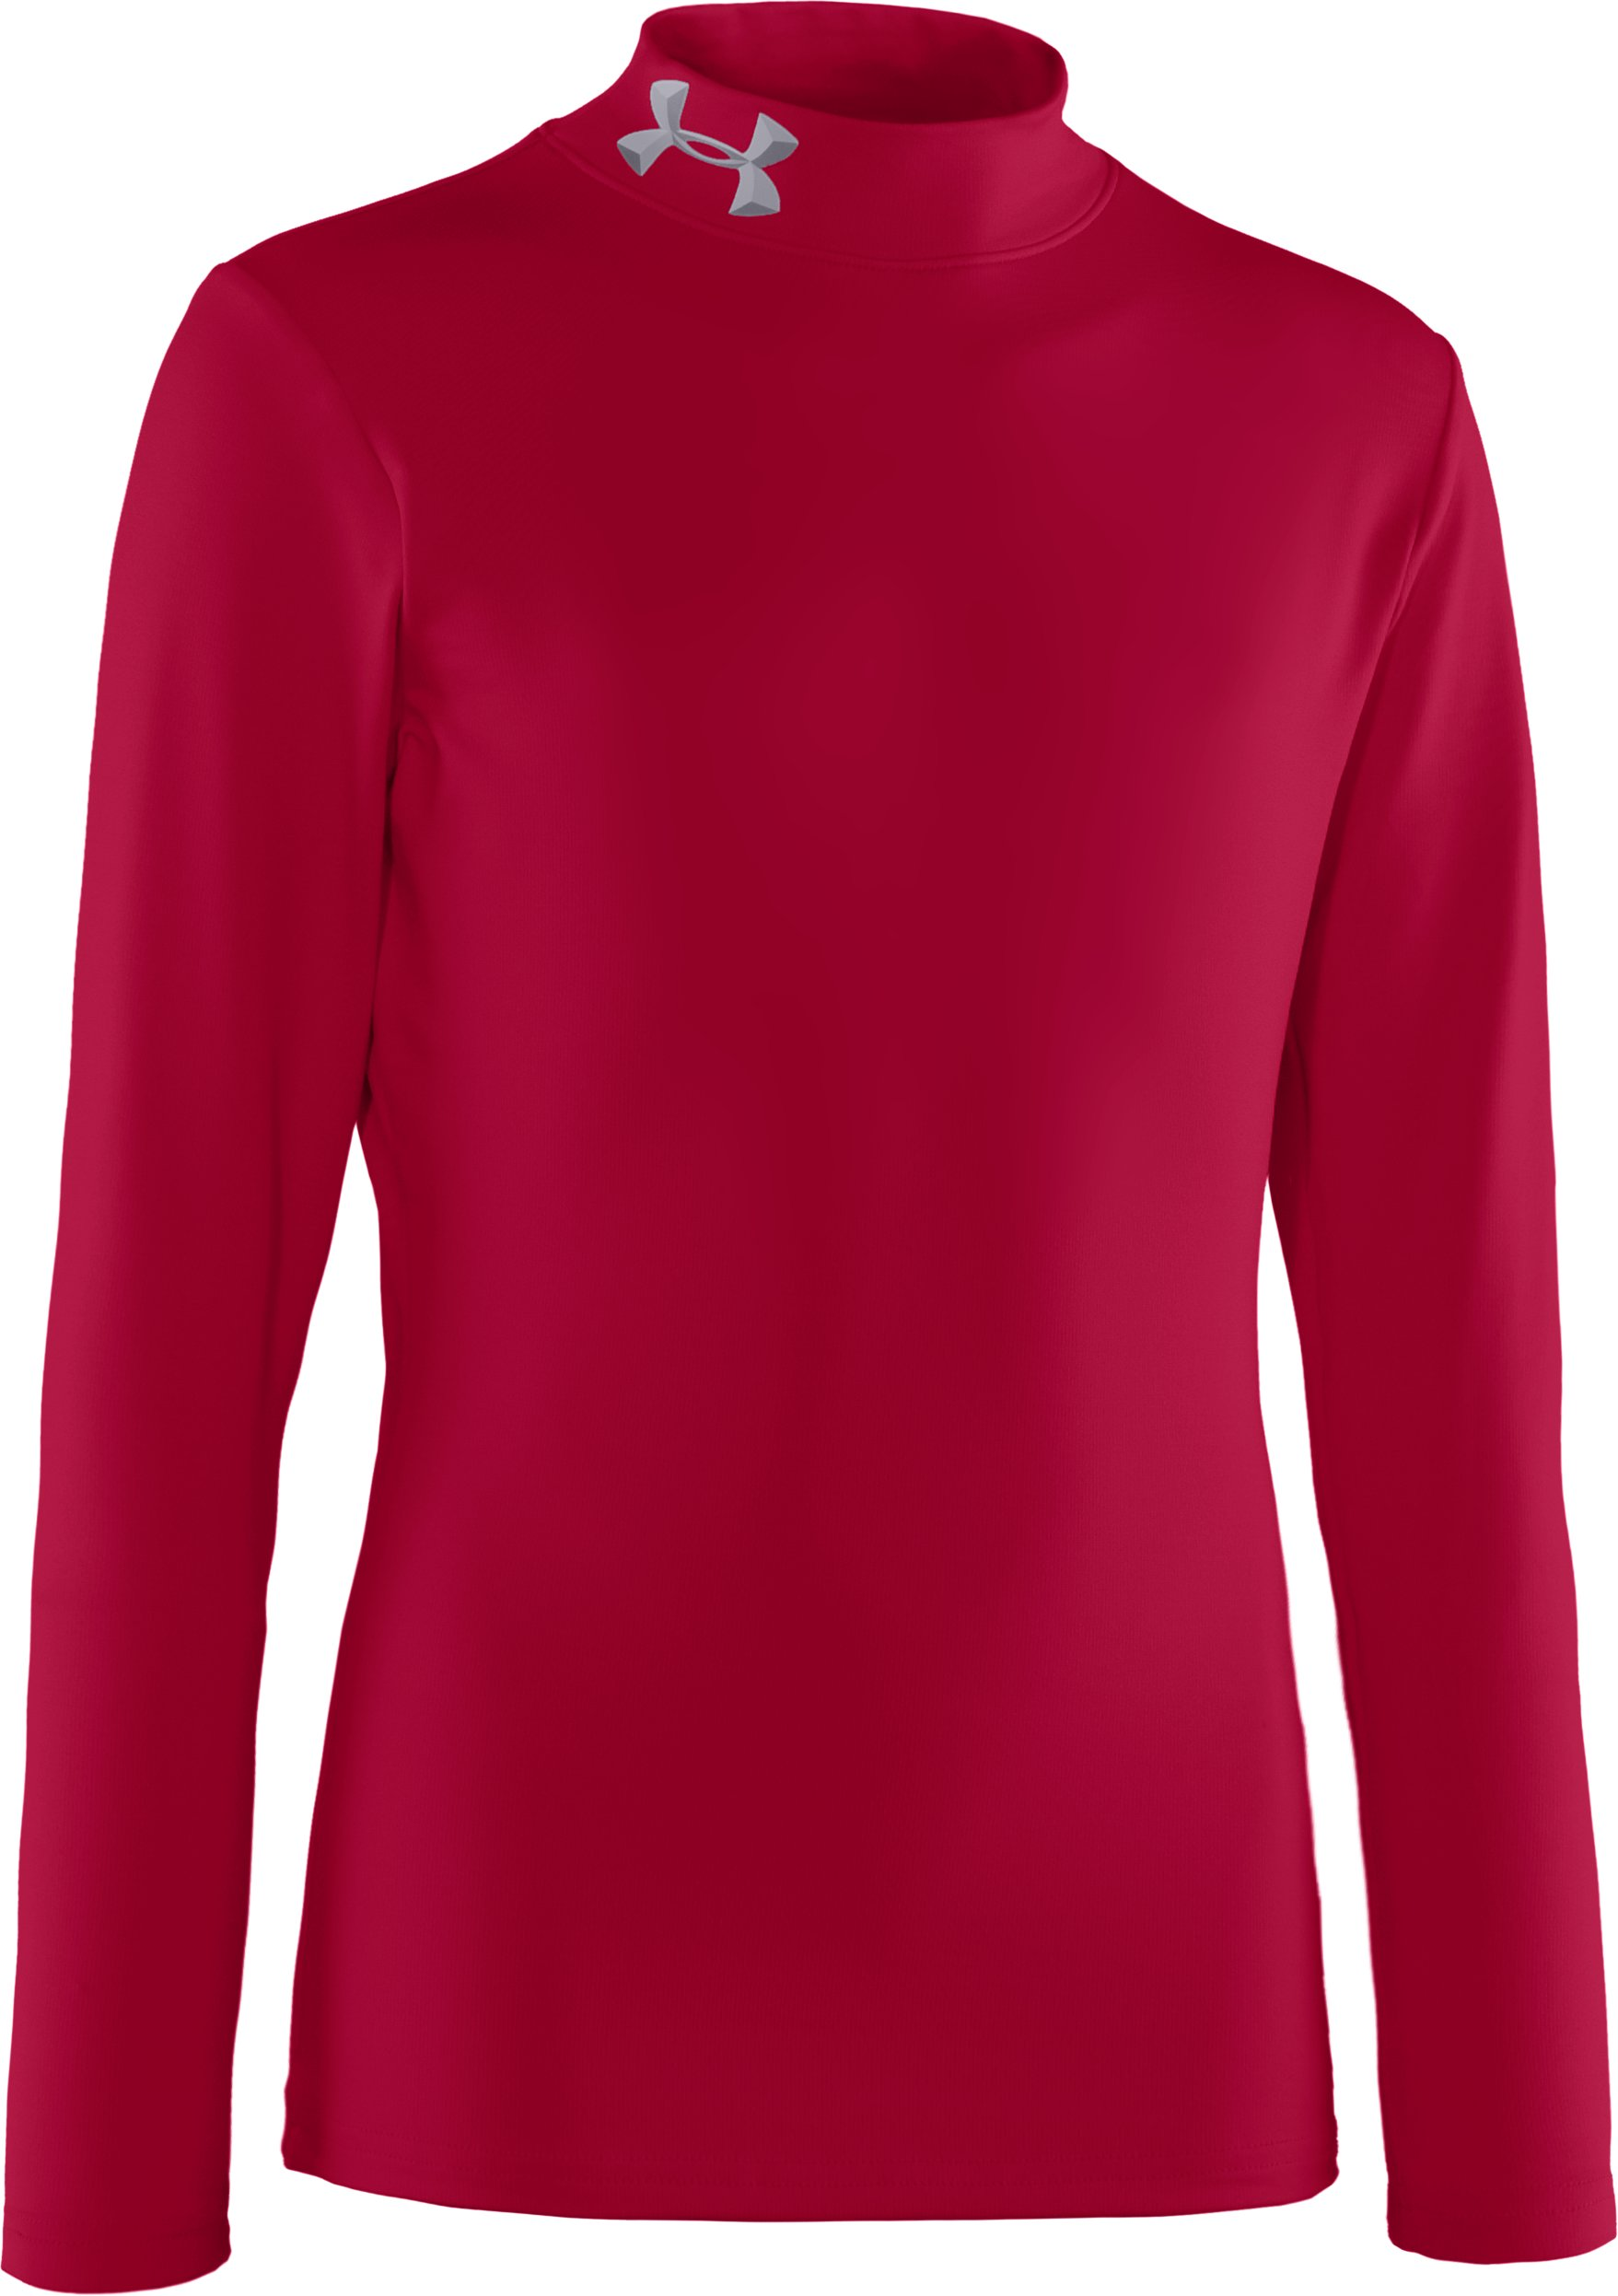 Boys' ColdGear® Evo Fitted Baselayer Mock, Maroon